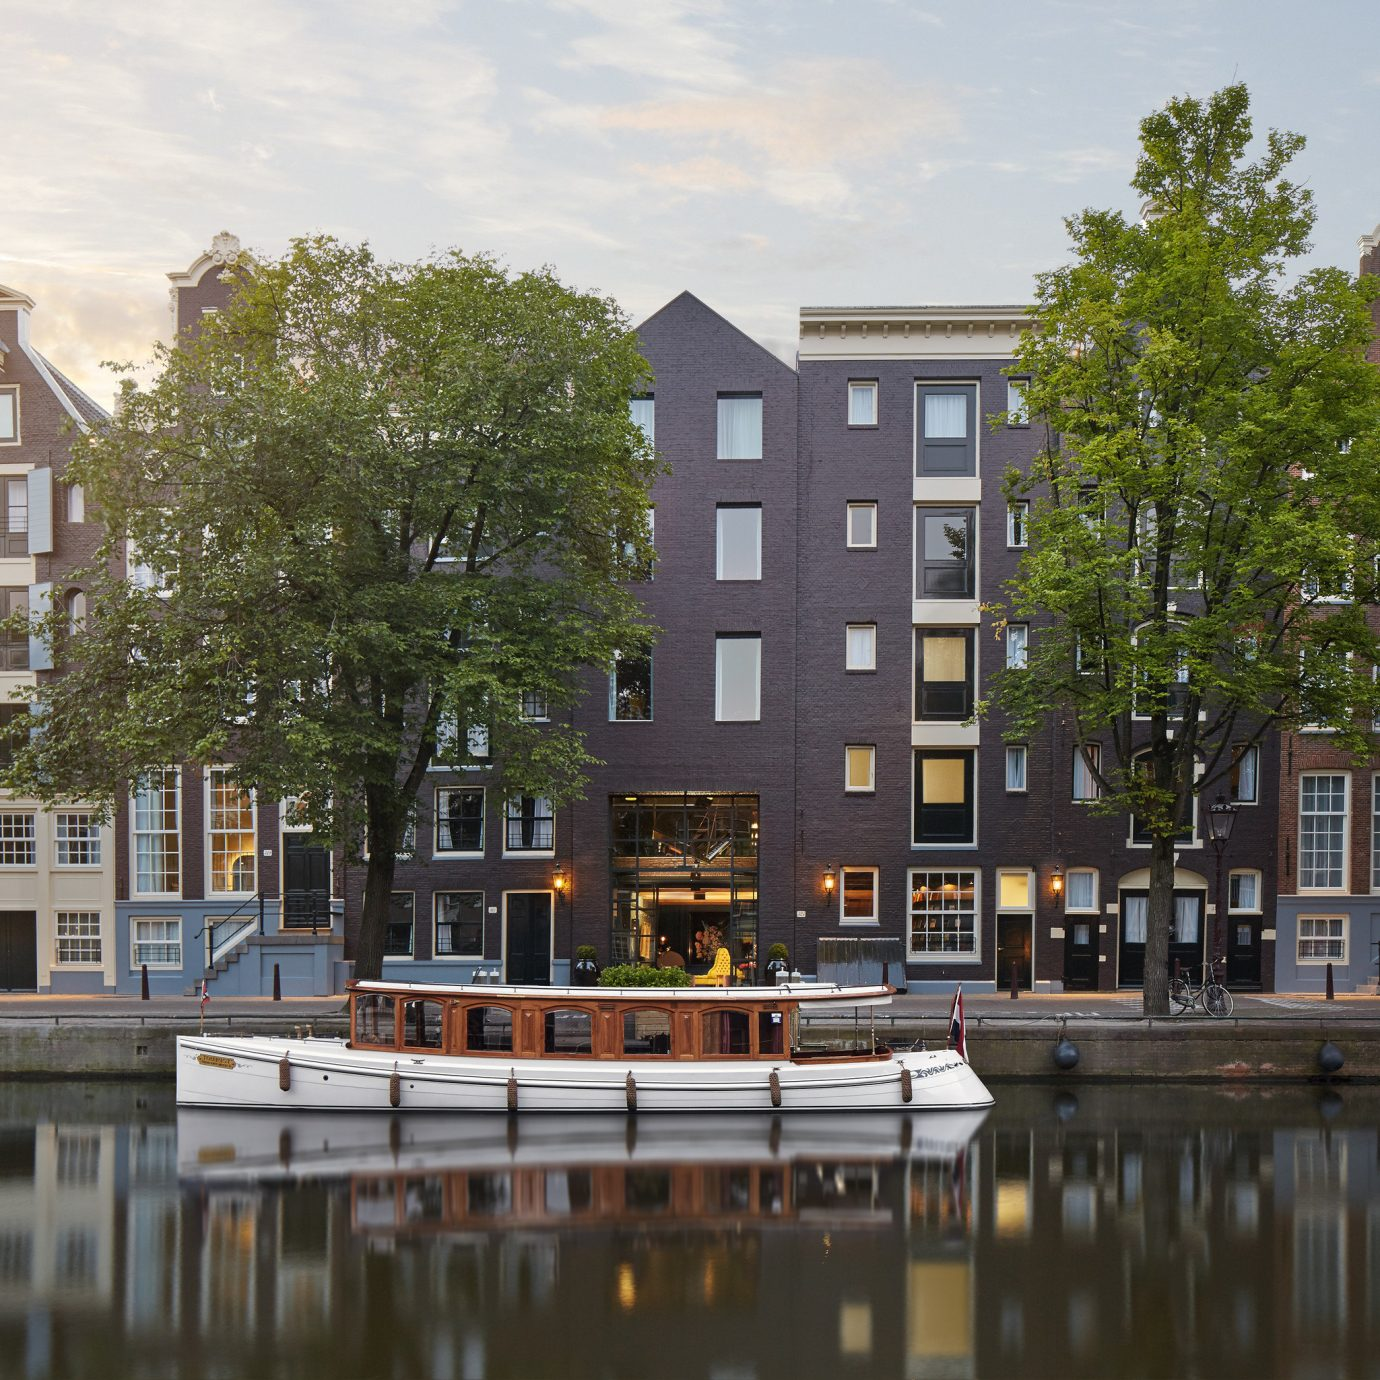 Amsterdam Boutique Hotels Hotels The Netherlands Trip Ideas outdoor sky water Canal City neighbourhood landmark Town urban area tower block waterway residential area reflection house cityscape human settlement Architecture Downtown River condominium facade town square skyline